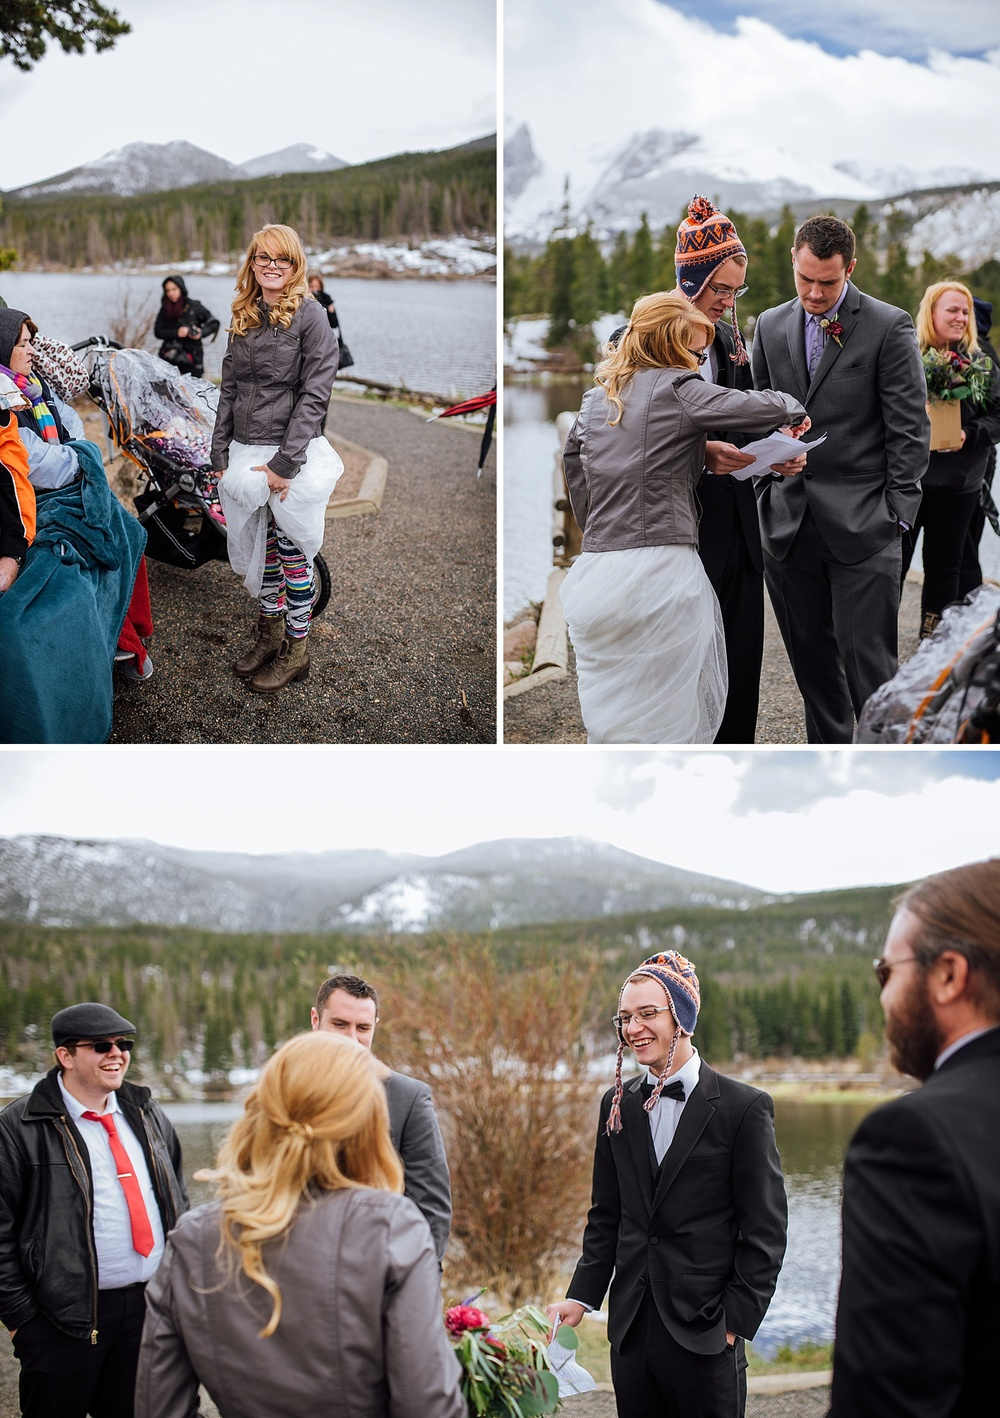 I love how the bride is wearing yoga pants/leggings underneath her dress! And the officiant wearing a hat! I love winter weddings! They're so fun! Photo by Maddie Mae Photography